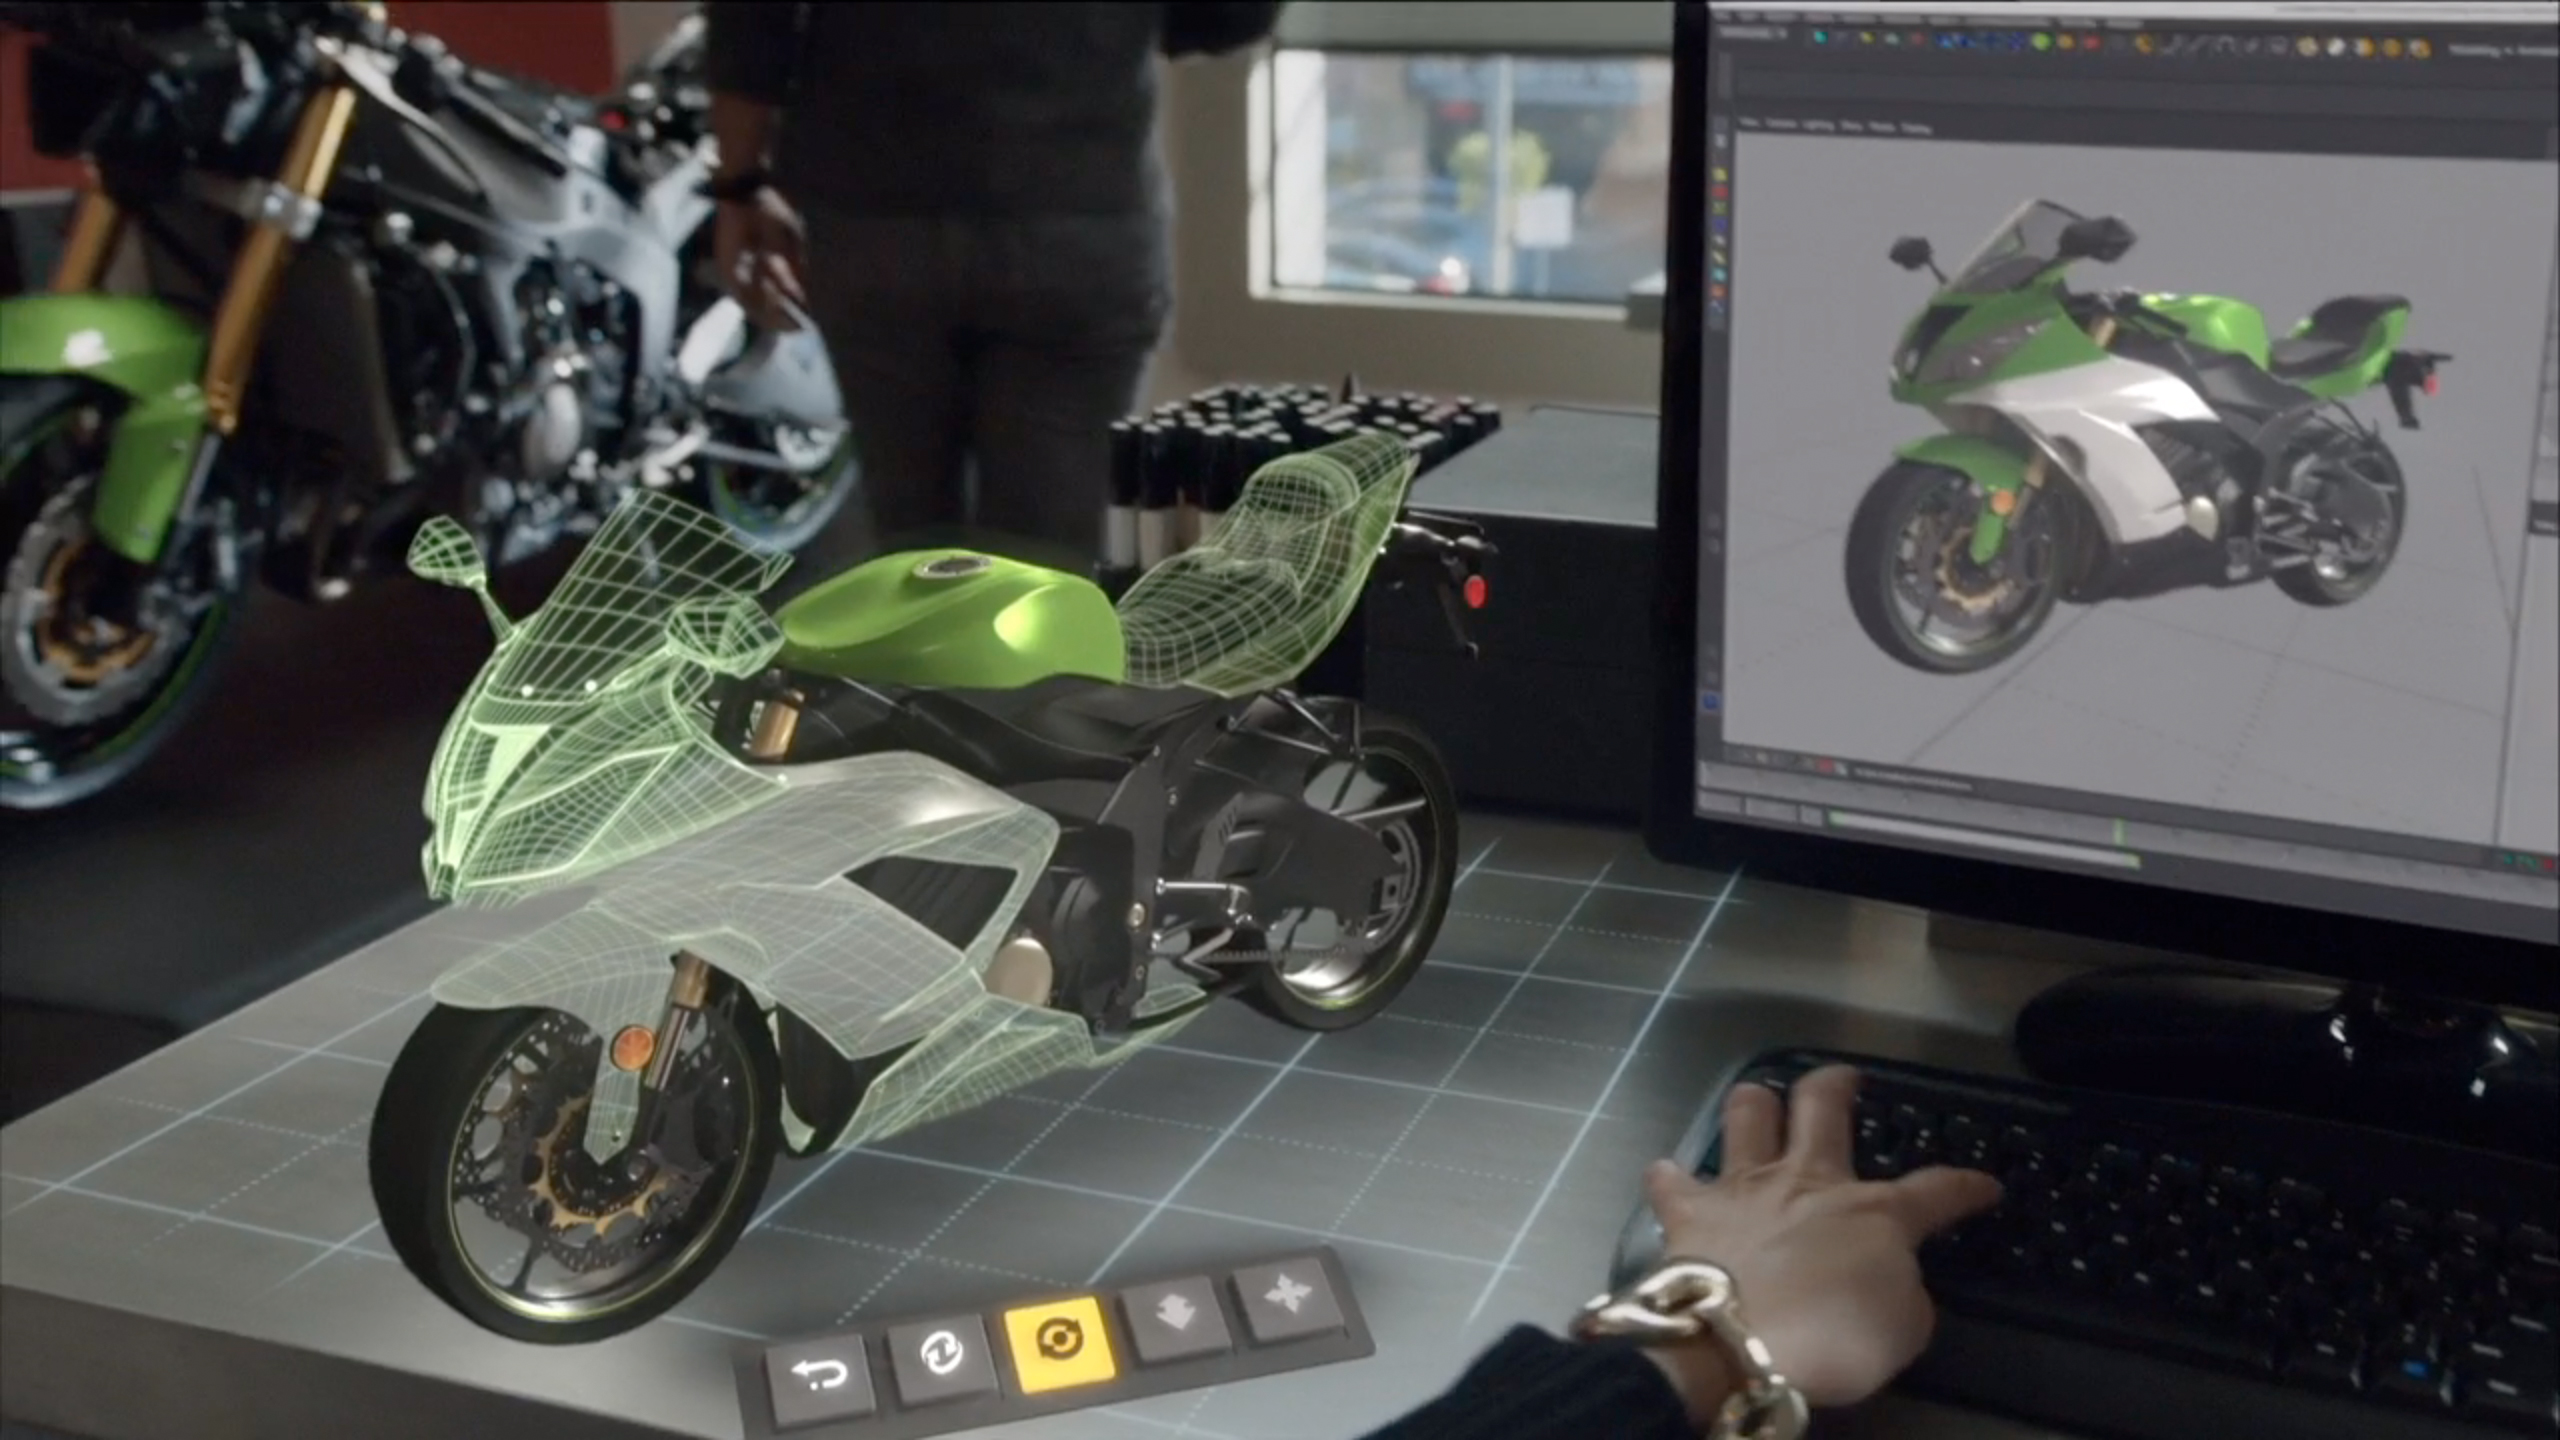 Hololens Motorcycle Augmented Reality Holographic Images Microsoft